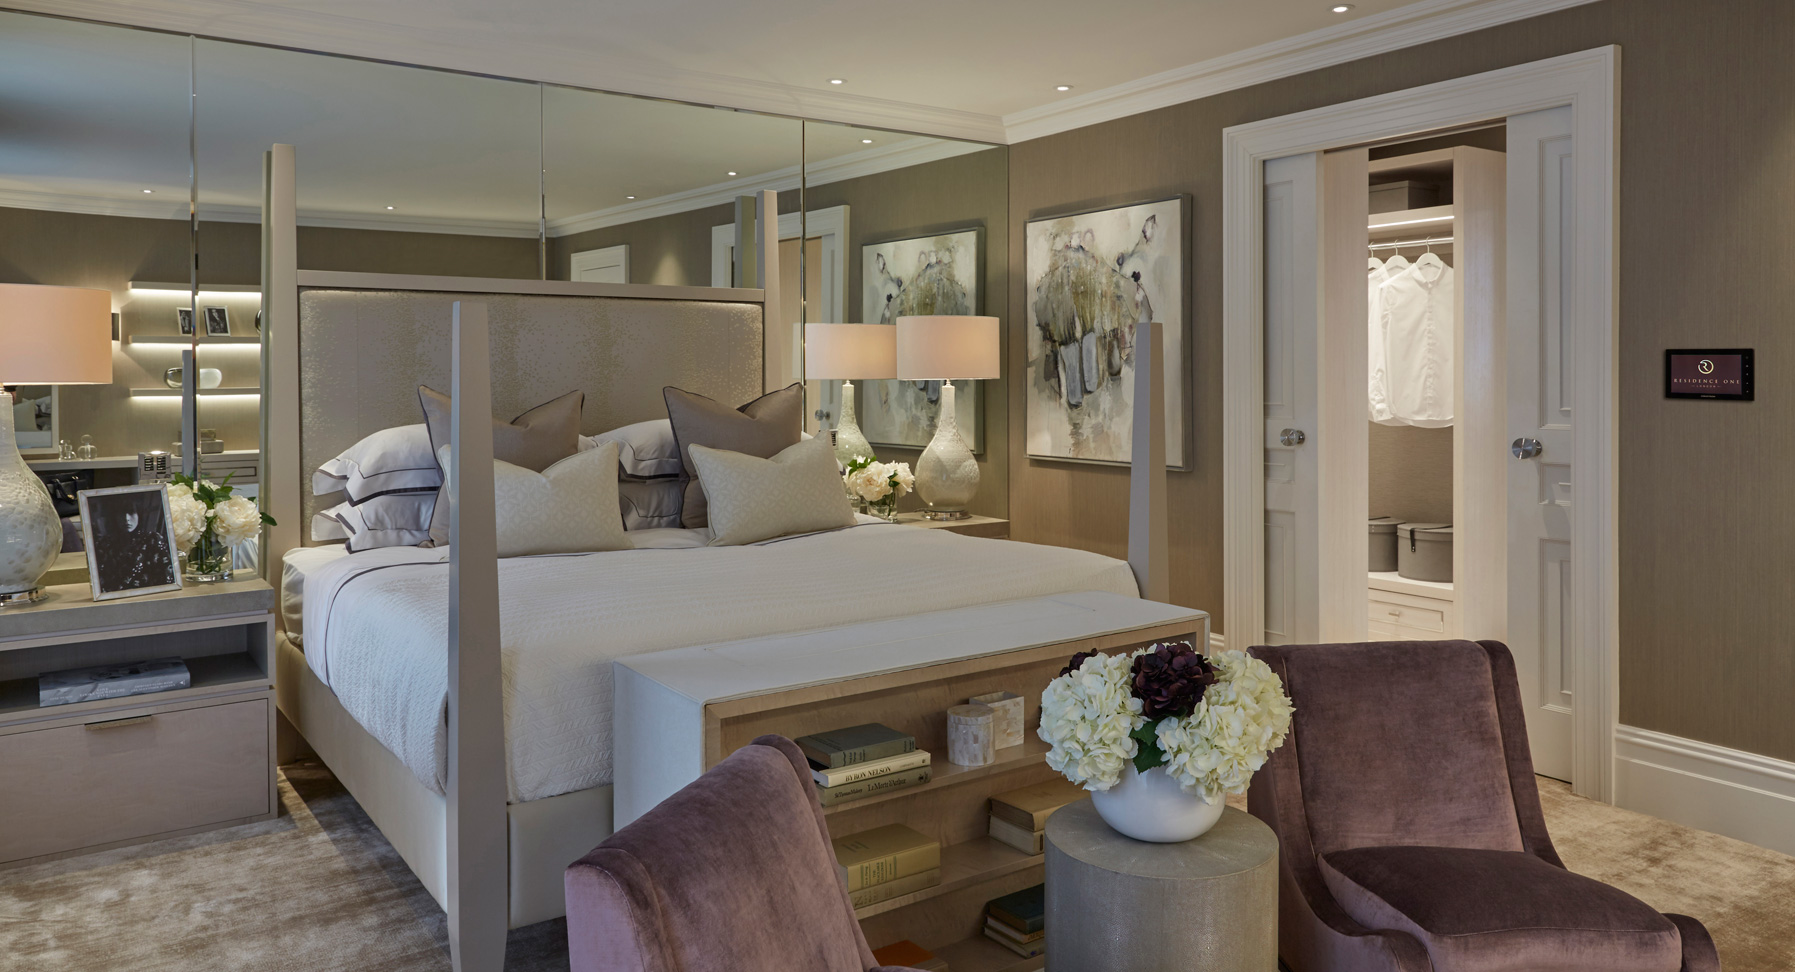 The master bedroom. Furniture is bespoke, and woods used at FSC certified